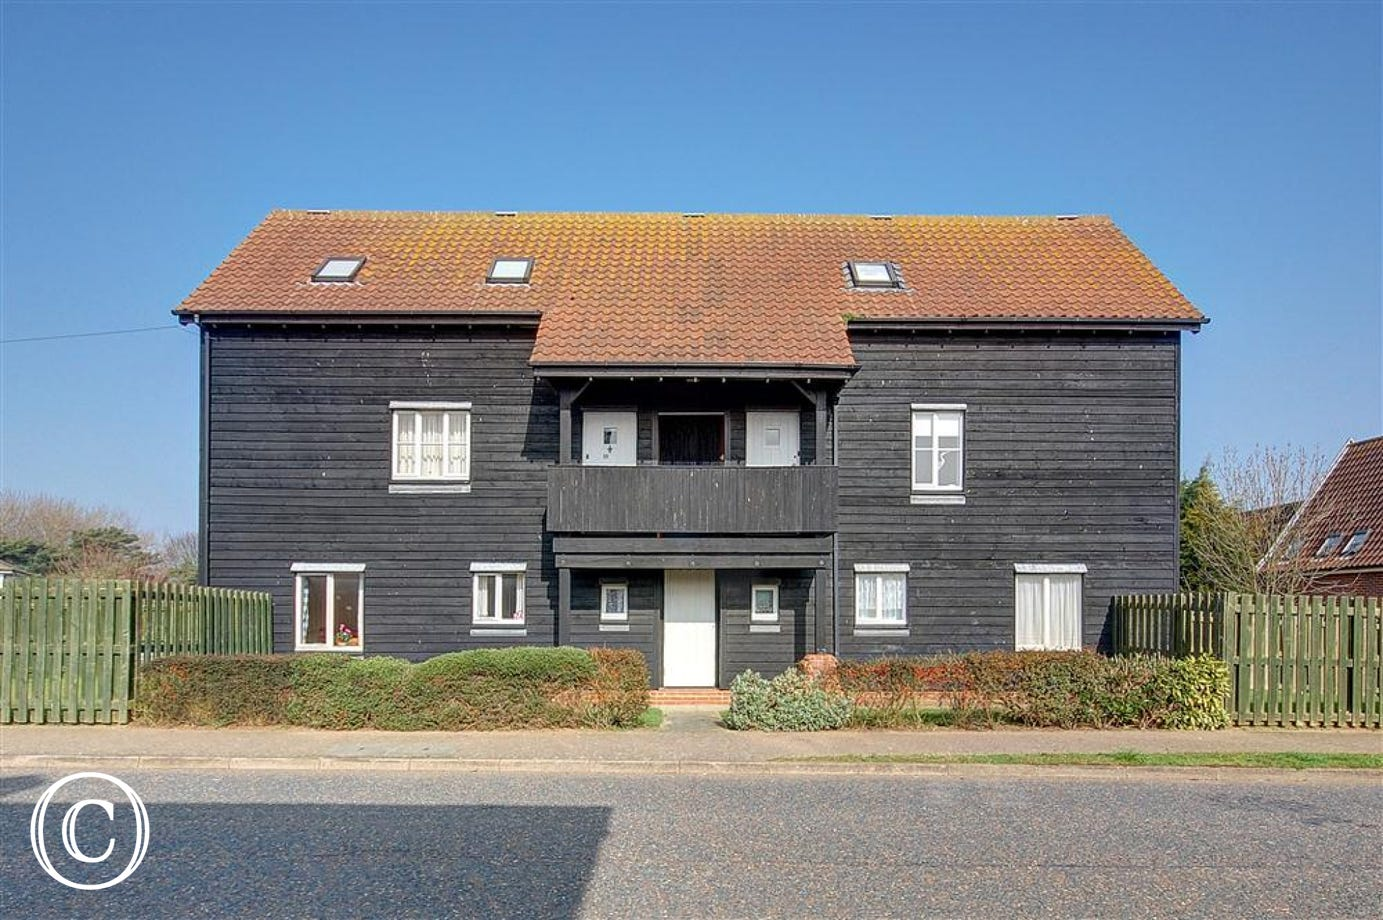 The Quarter Deck is a beautifully presented apartment benefiting from light and spacious accommodation. It is located in the popular seaside town of Aldeburgh.